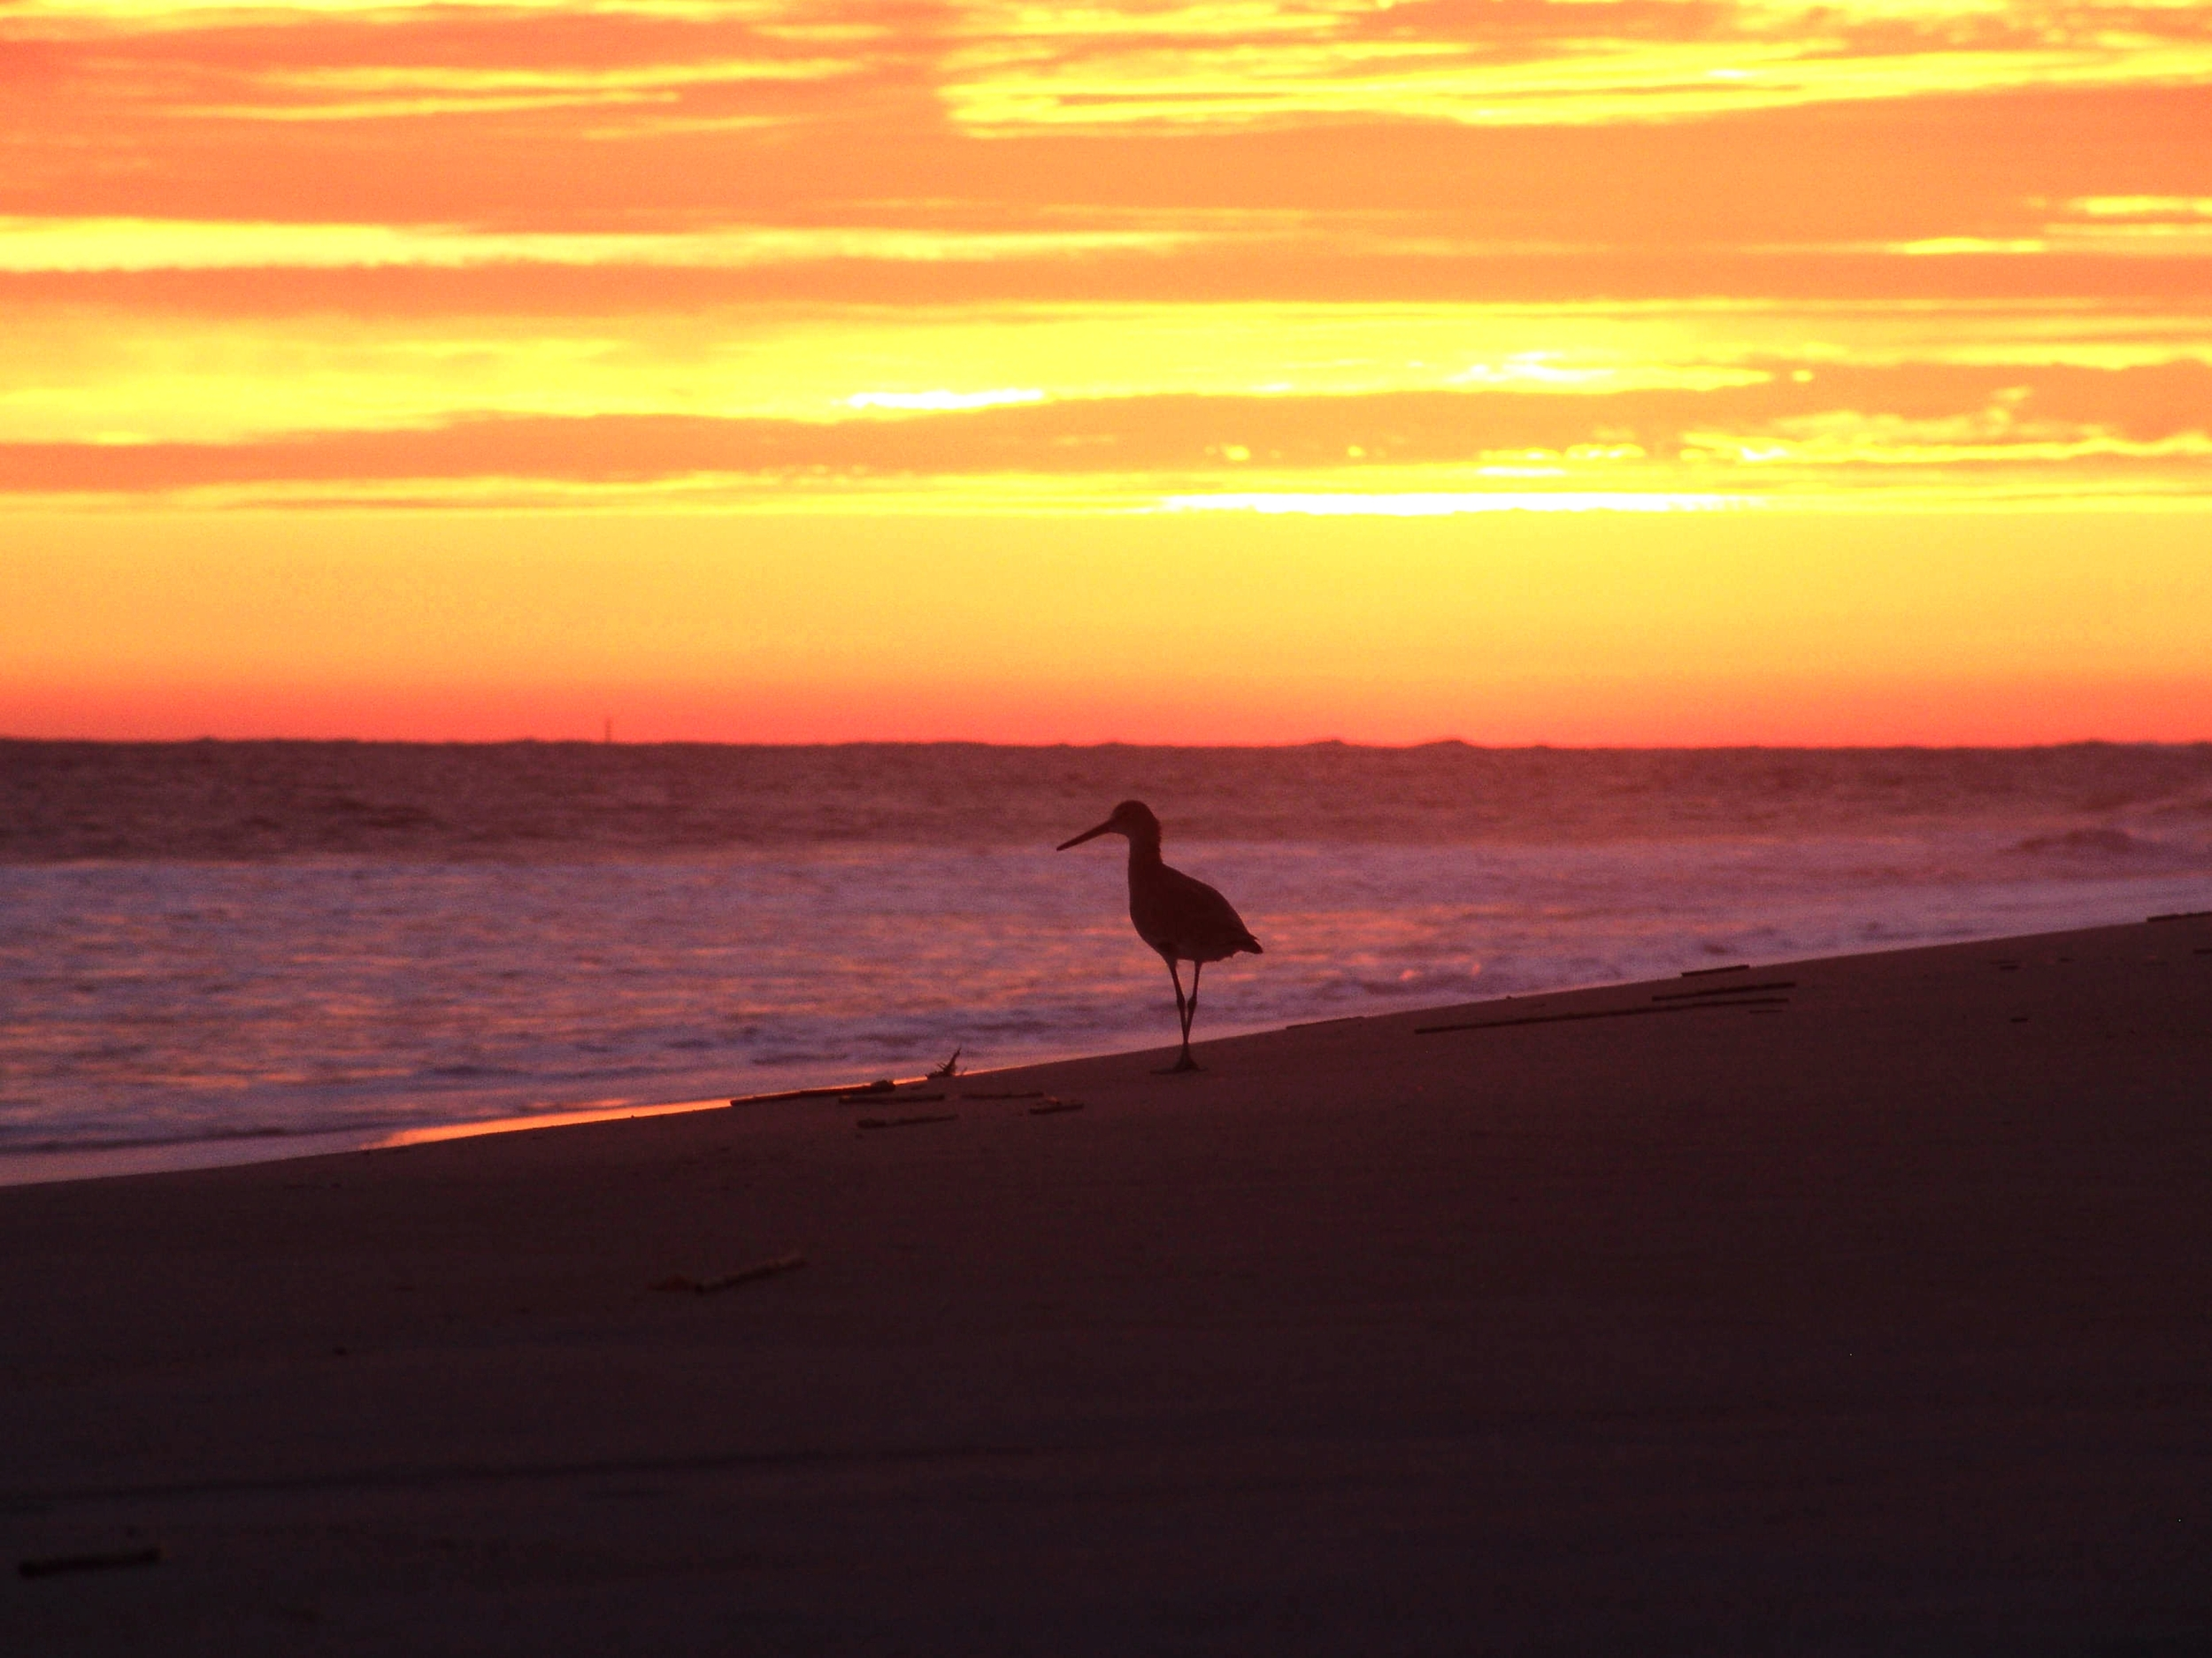 BHI Sandpiper at sunset DSC04059.jpg